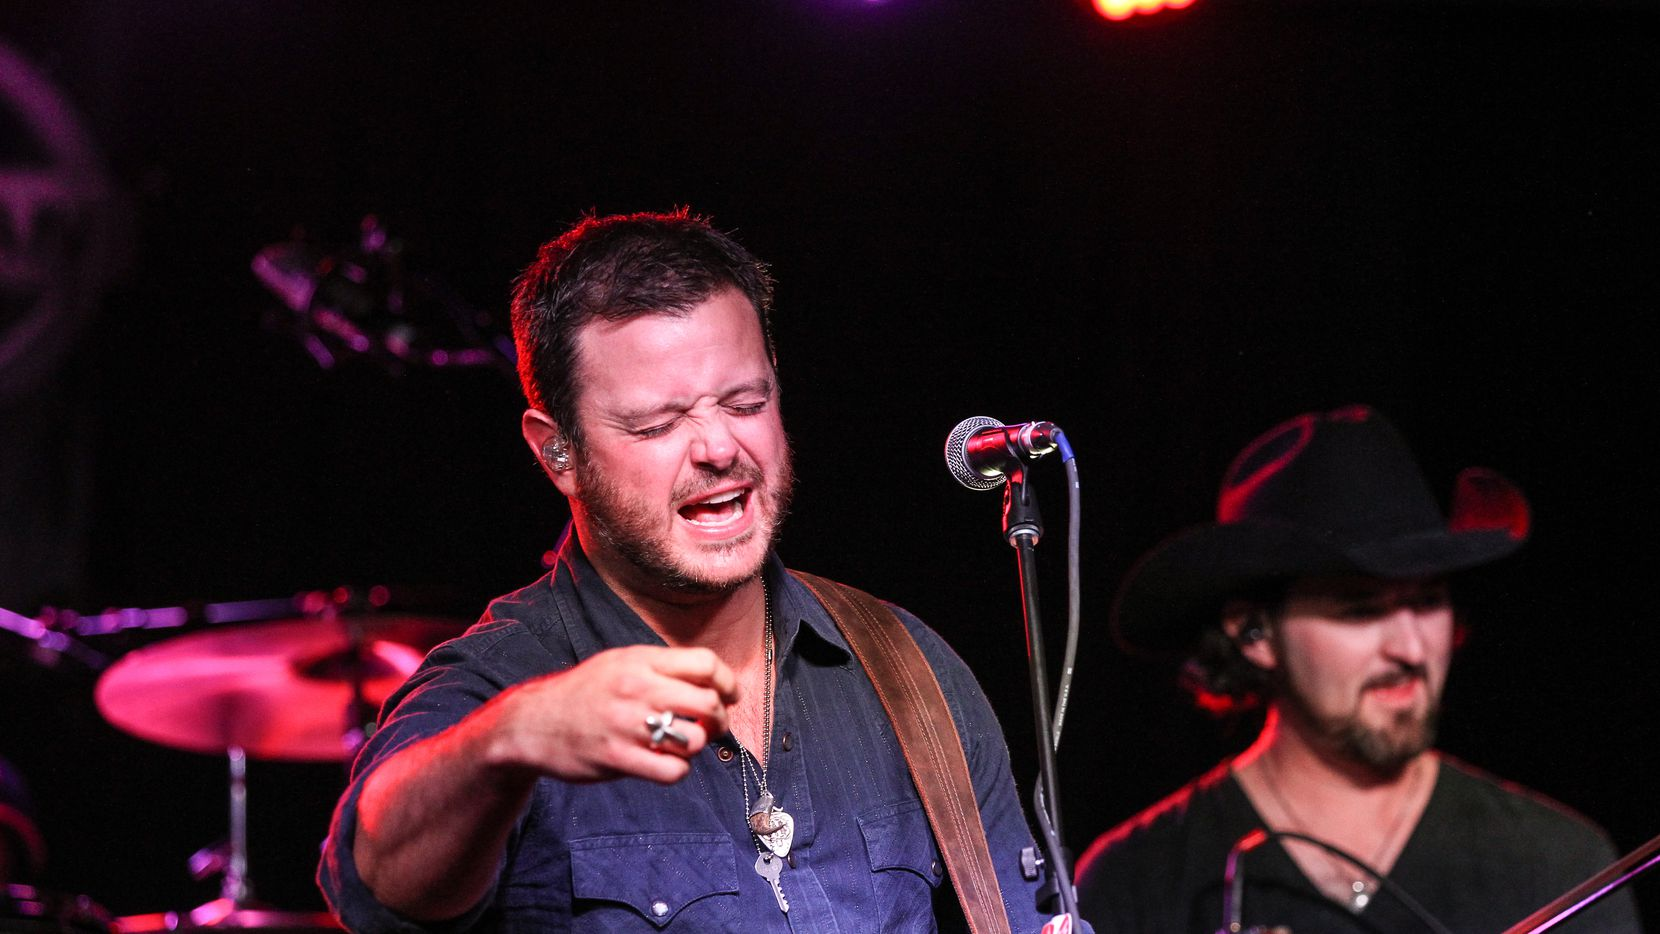 Wade Bowen performs during the 16th Annual Americana Music Festival & Conference at the Mercy Lounge on Sept. 17, 2015 in Nashville, Tennessee.